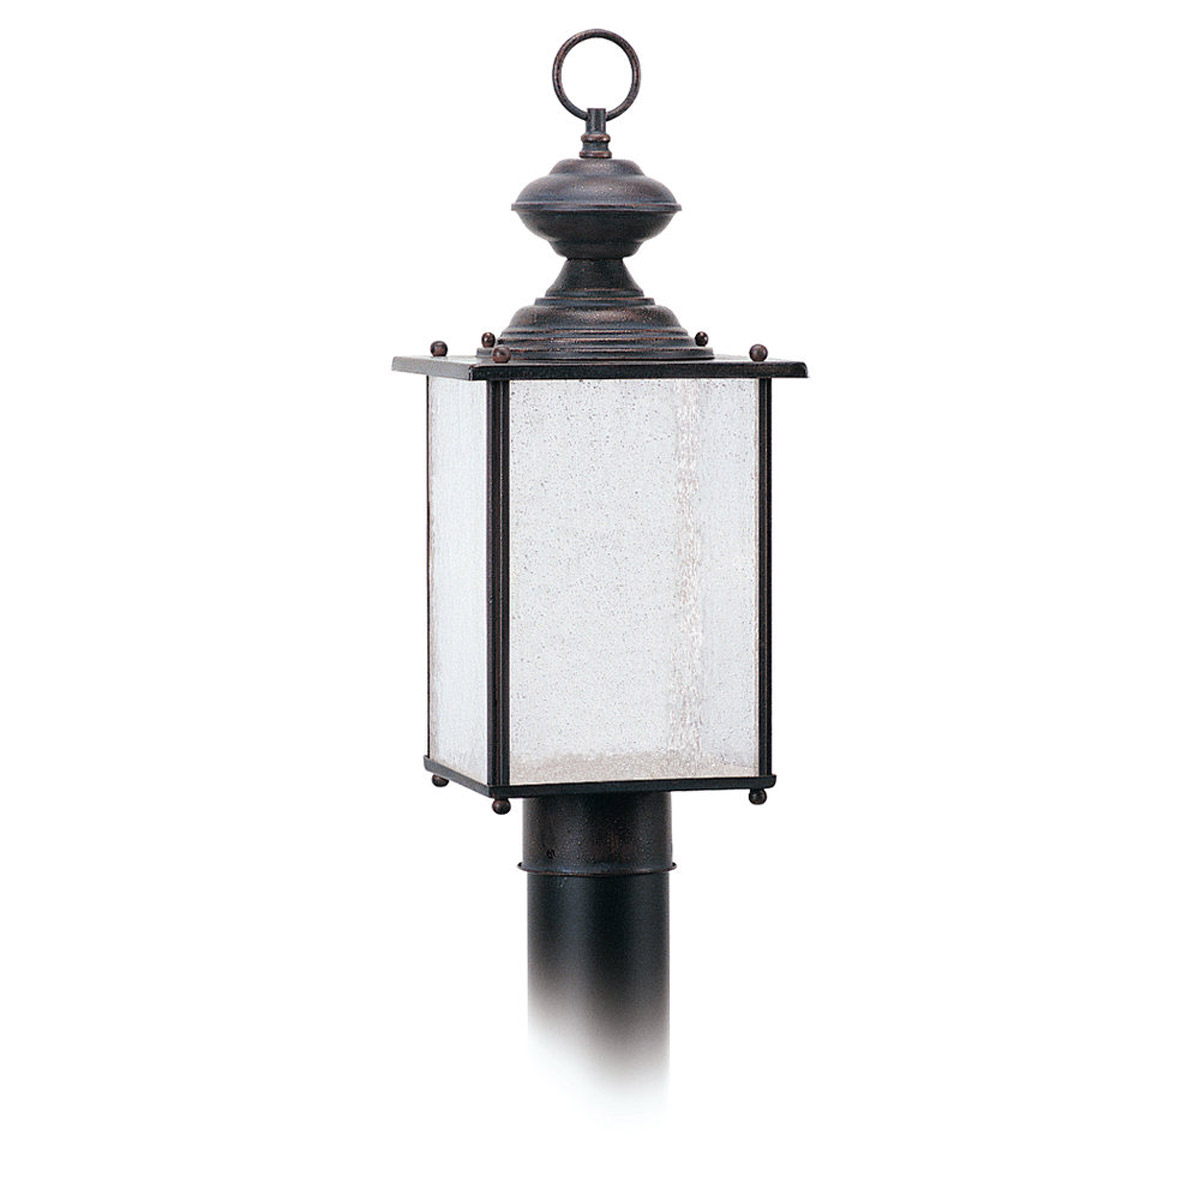 Sea Gull Lighting Jamestowne 1 Light Outdoor Wall Lantern in Textured Rust Patina 89386PBLE-08 photo